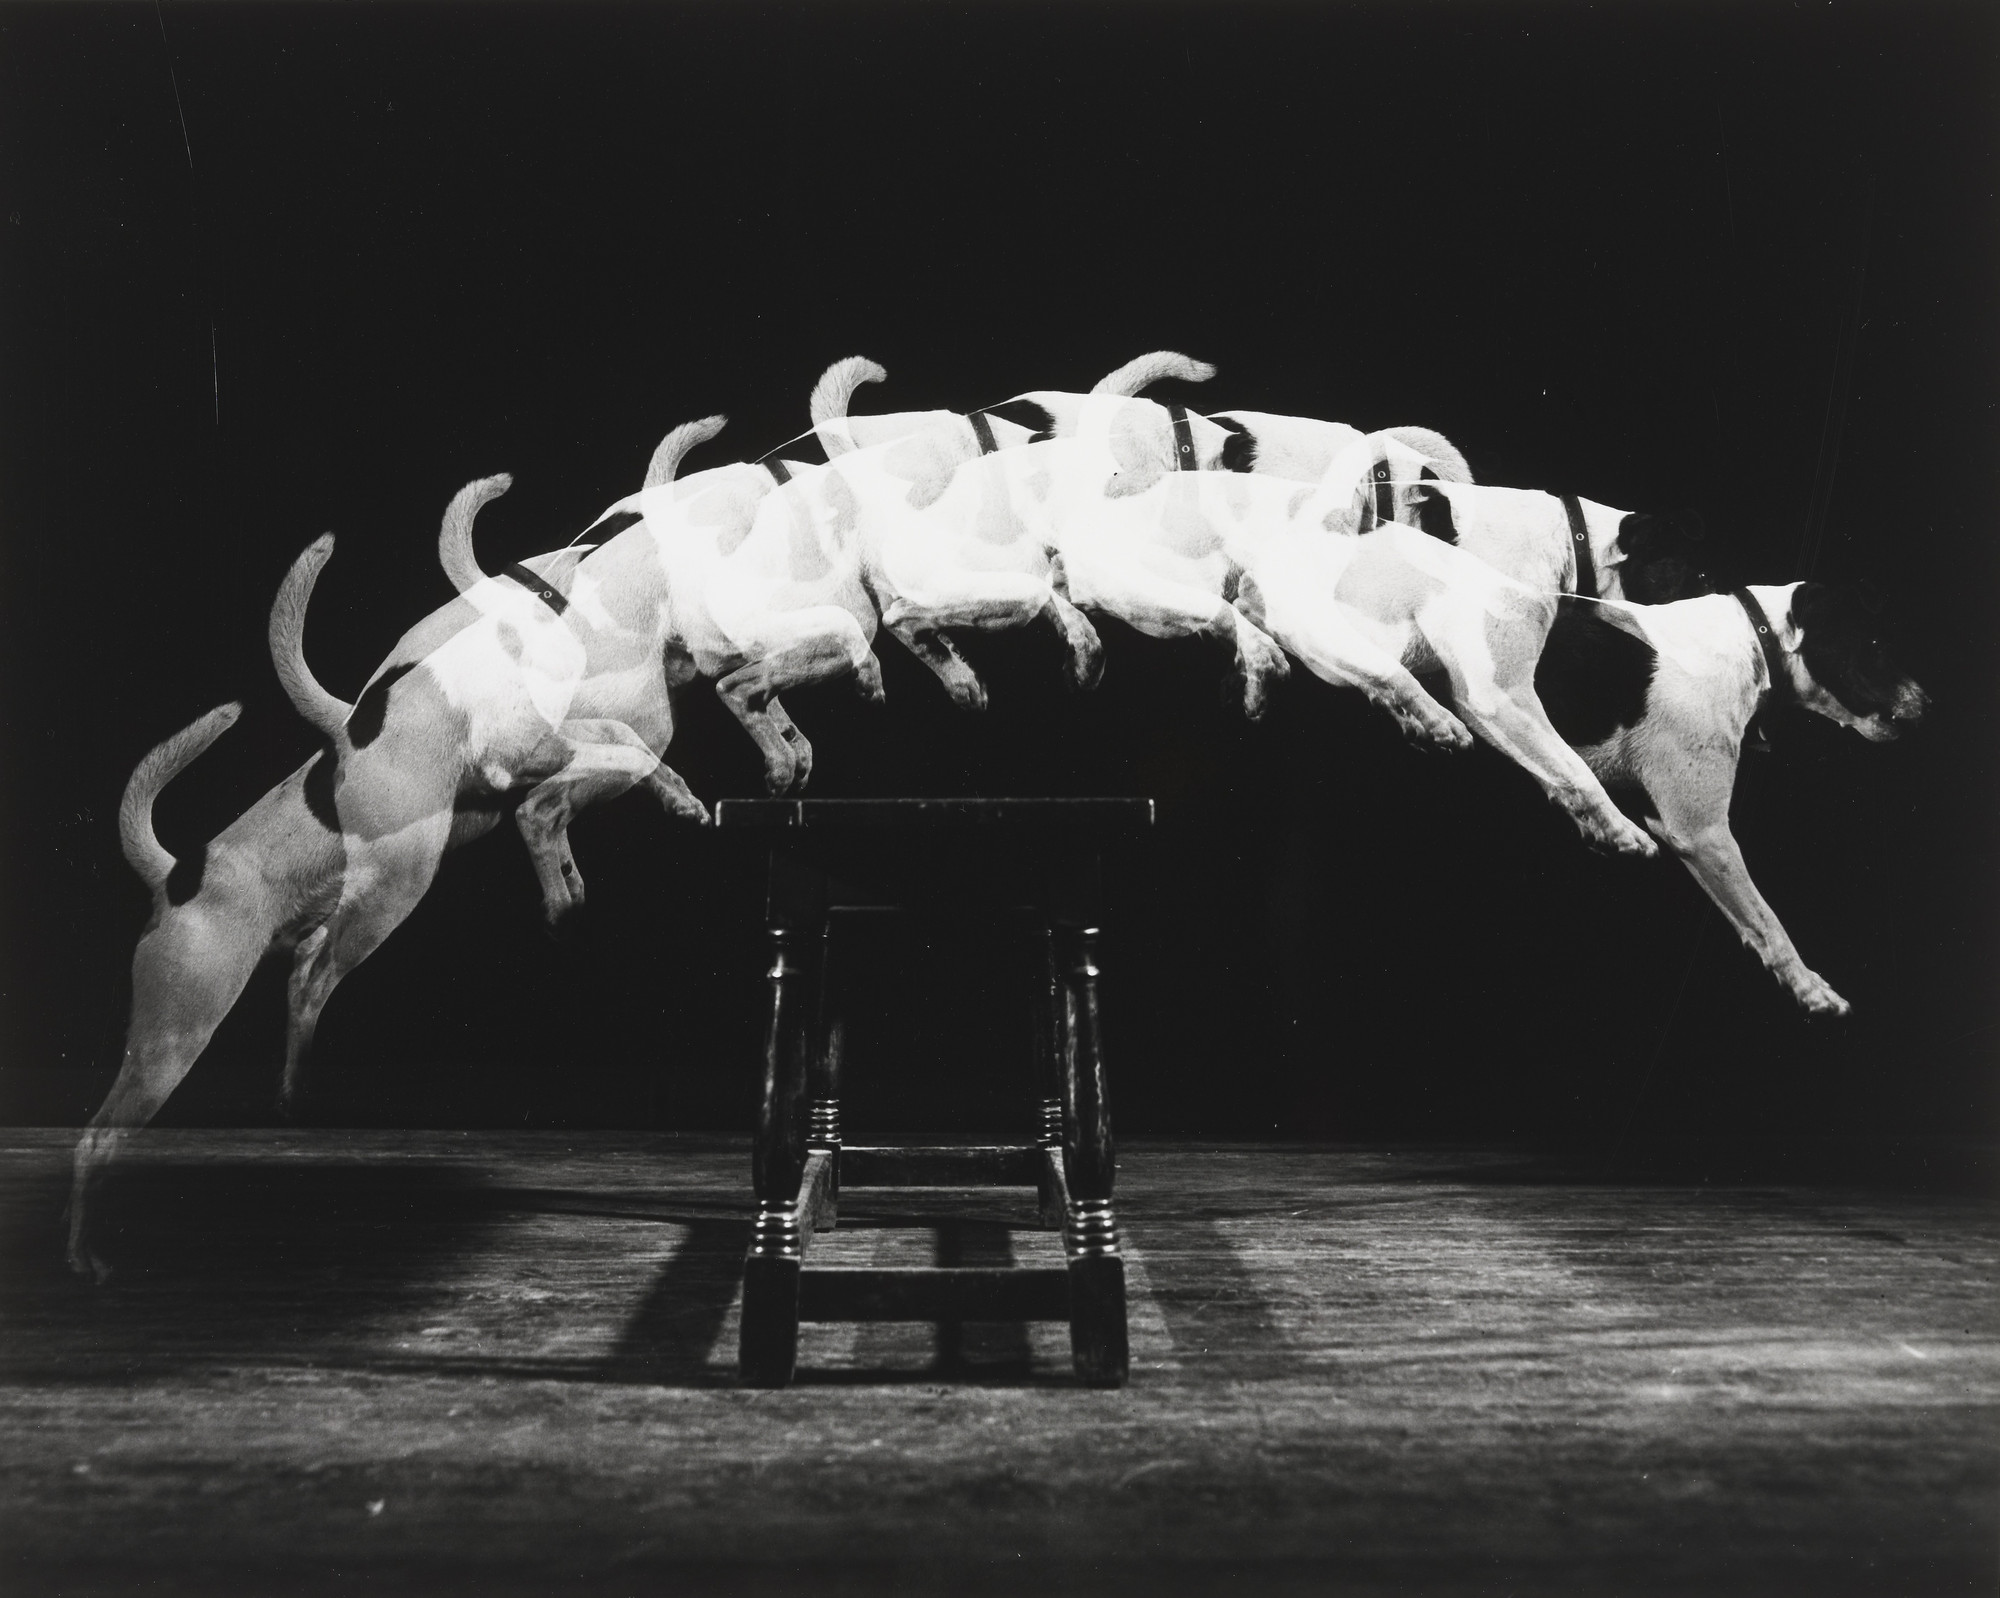 Harold Eugene Edgerton. Jackie Jumps a Bench. 1938